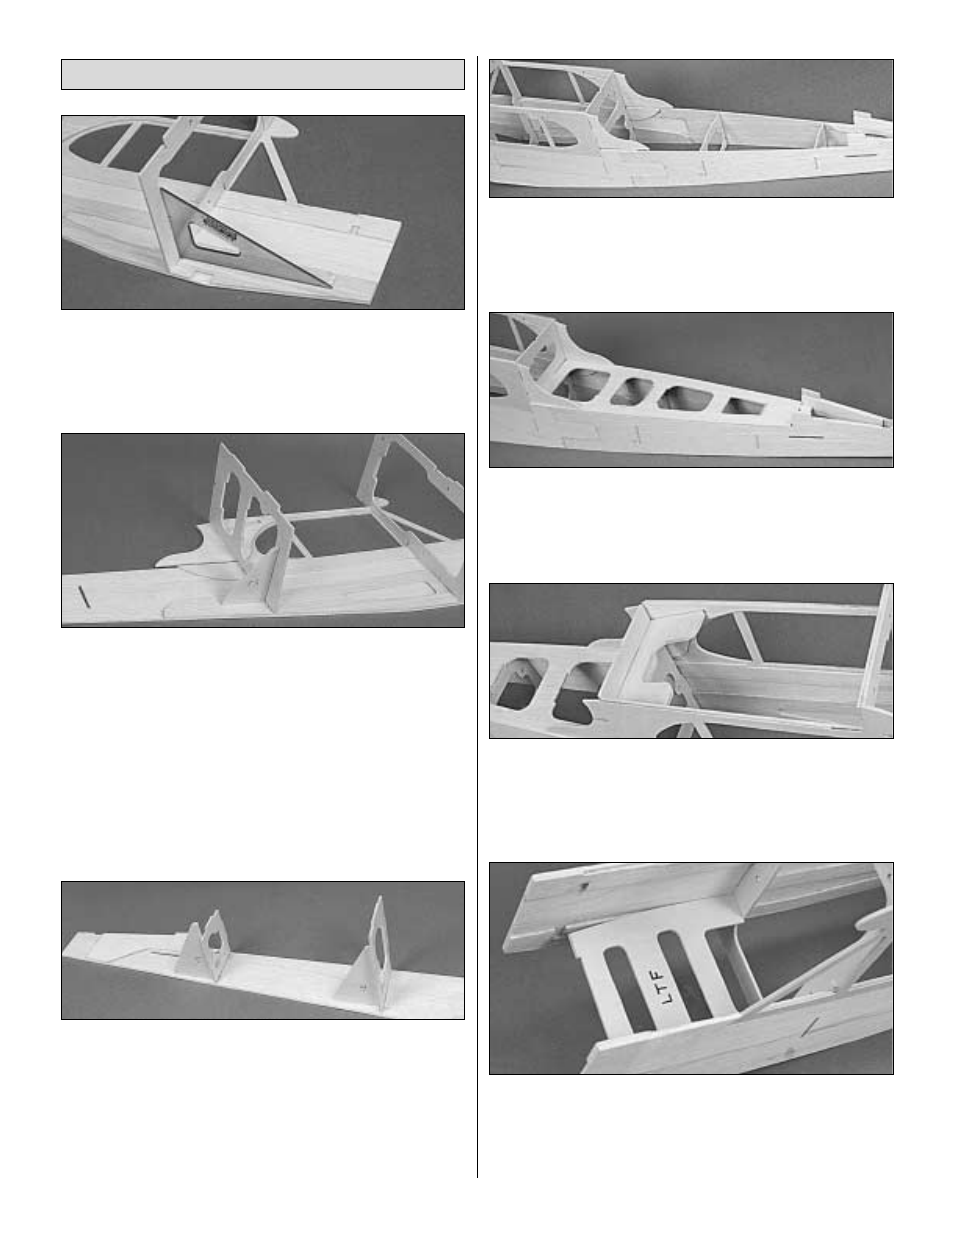 Assemble fuselage | Great Planes Piper J-3 Cub 40 Kit - GPMA0160 User Manual